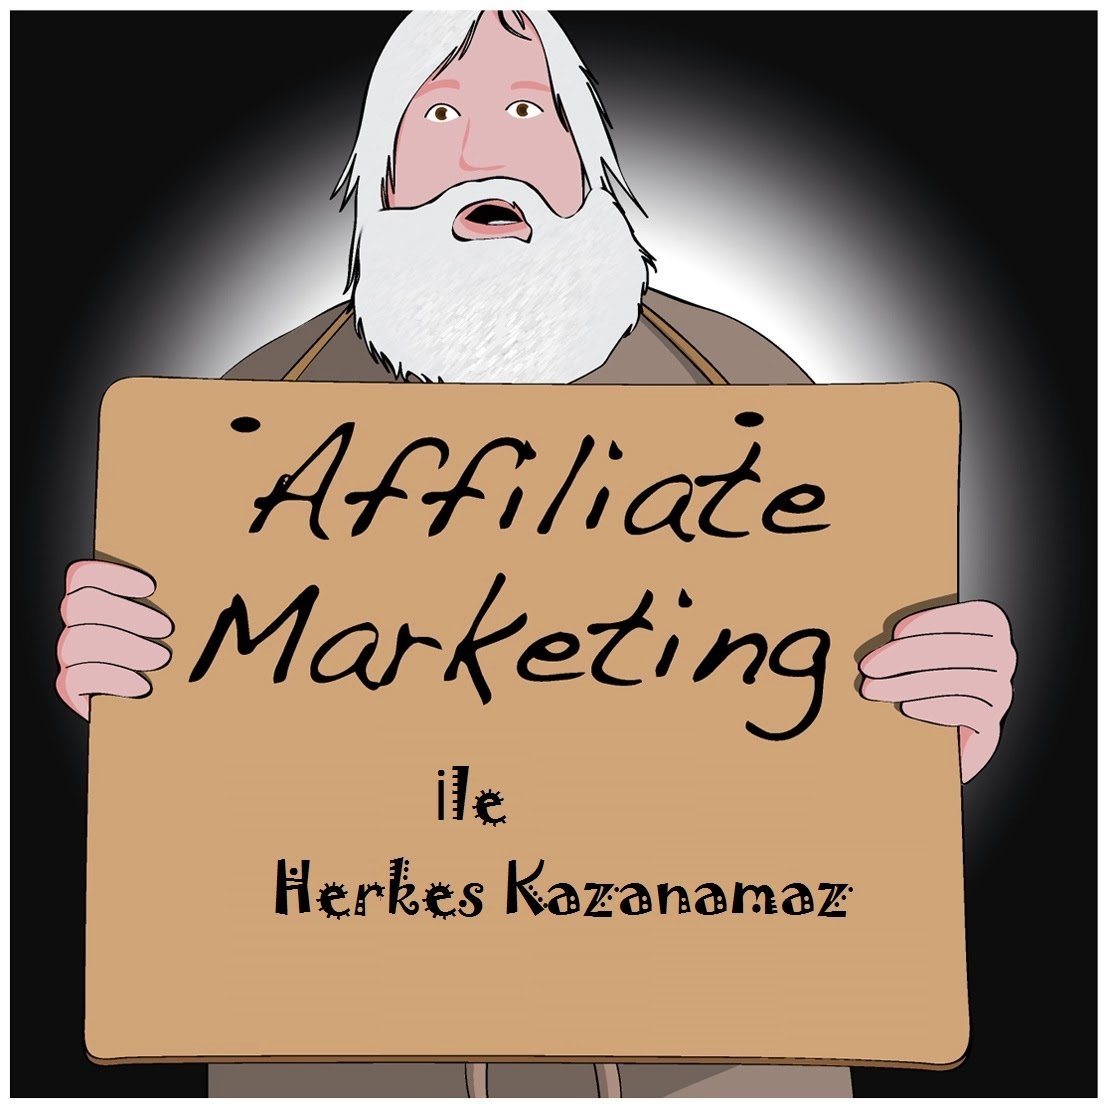 Affiliate Marketing ile herkes kazanamaz